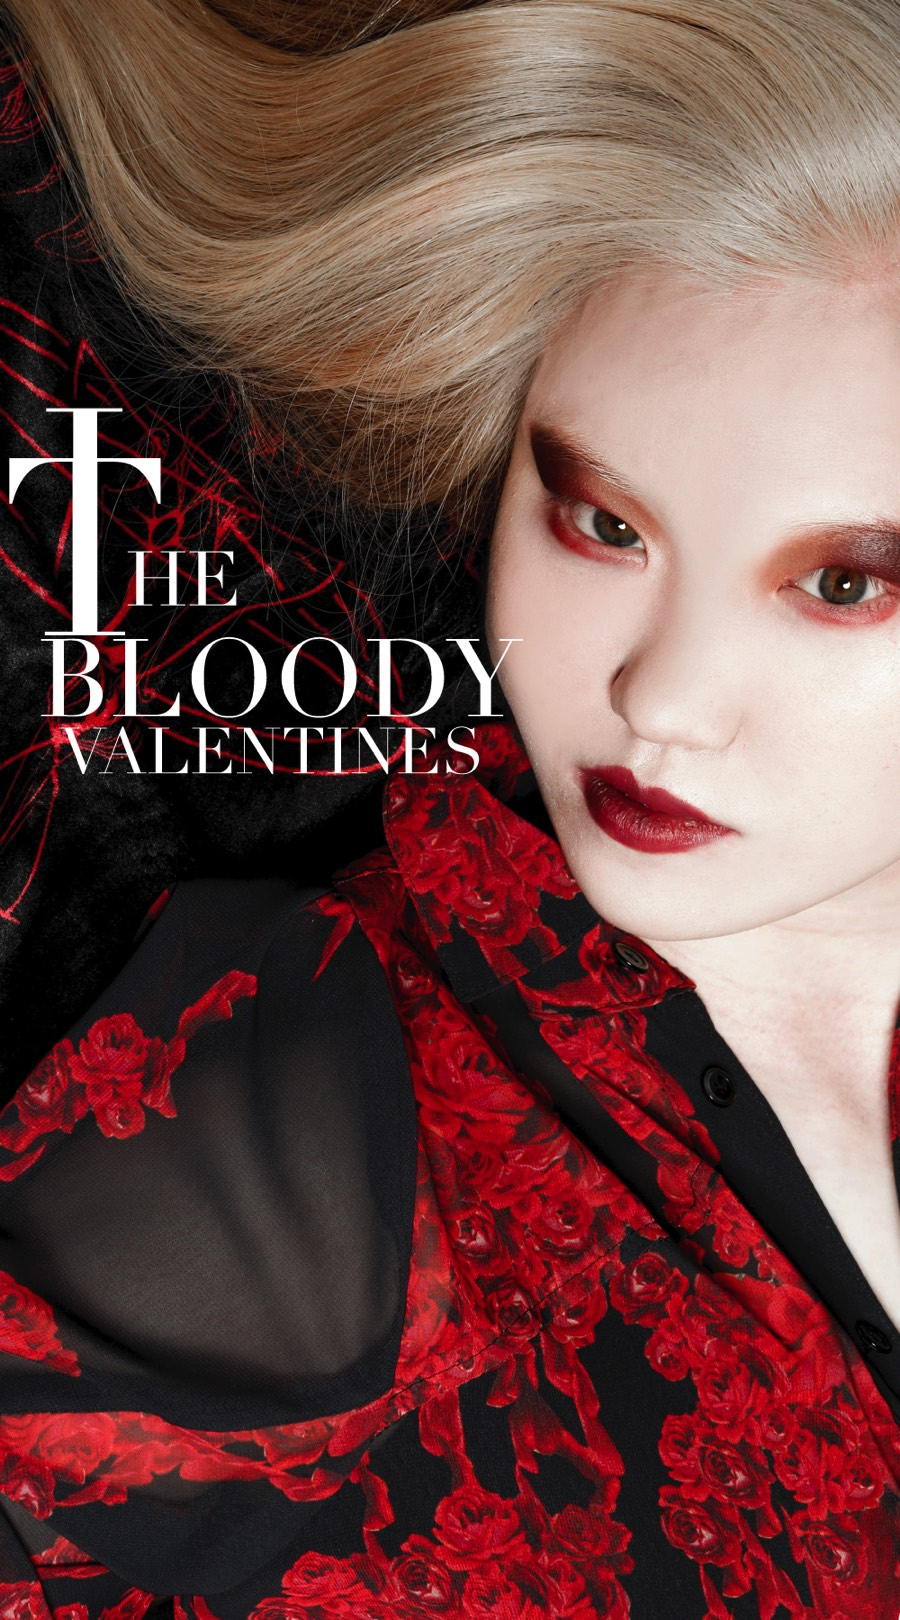 0124 THE BLOODY VALENTINES